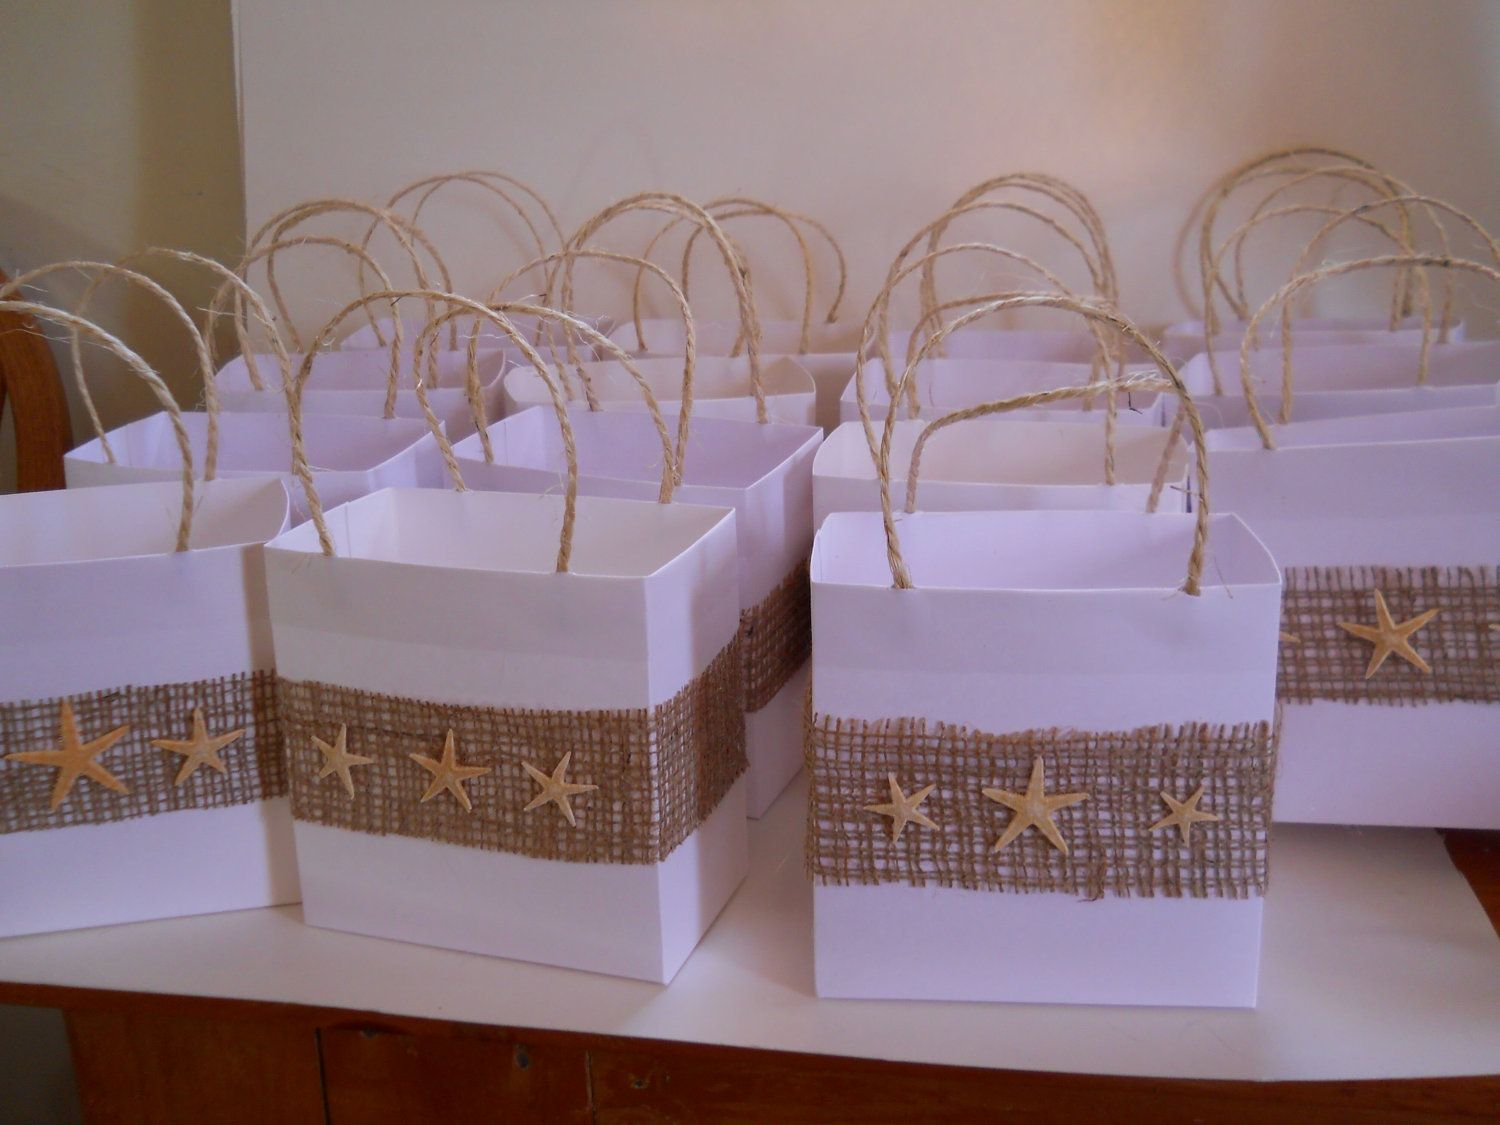 Beach Wedding Gift Bags: Elegant Bridal Party Favor Bags Or For Your Beach Wedding